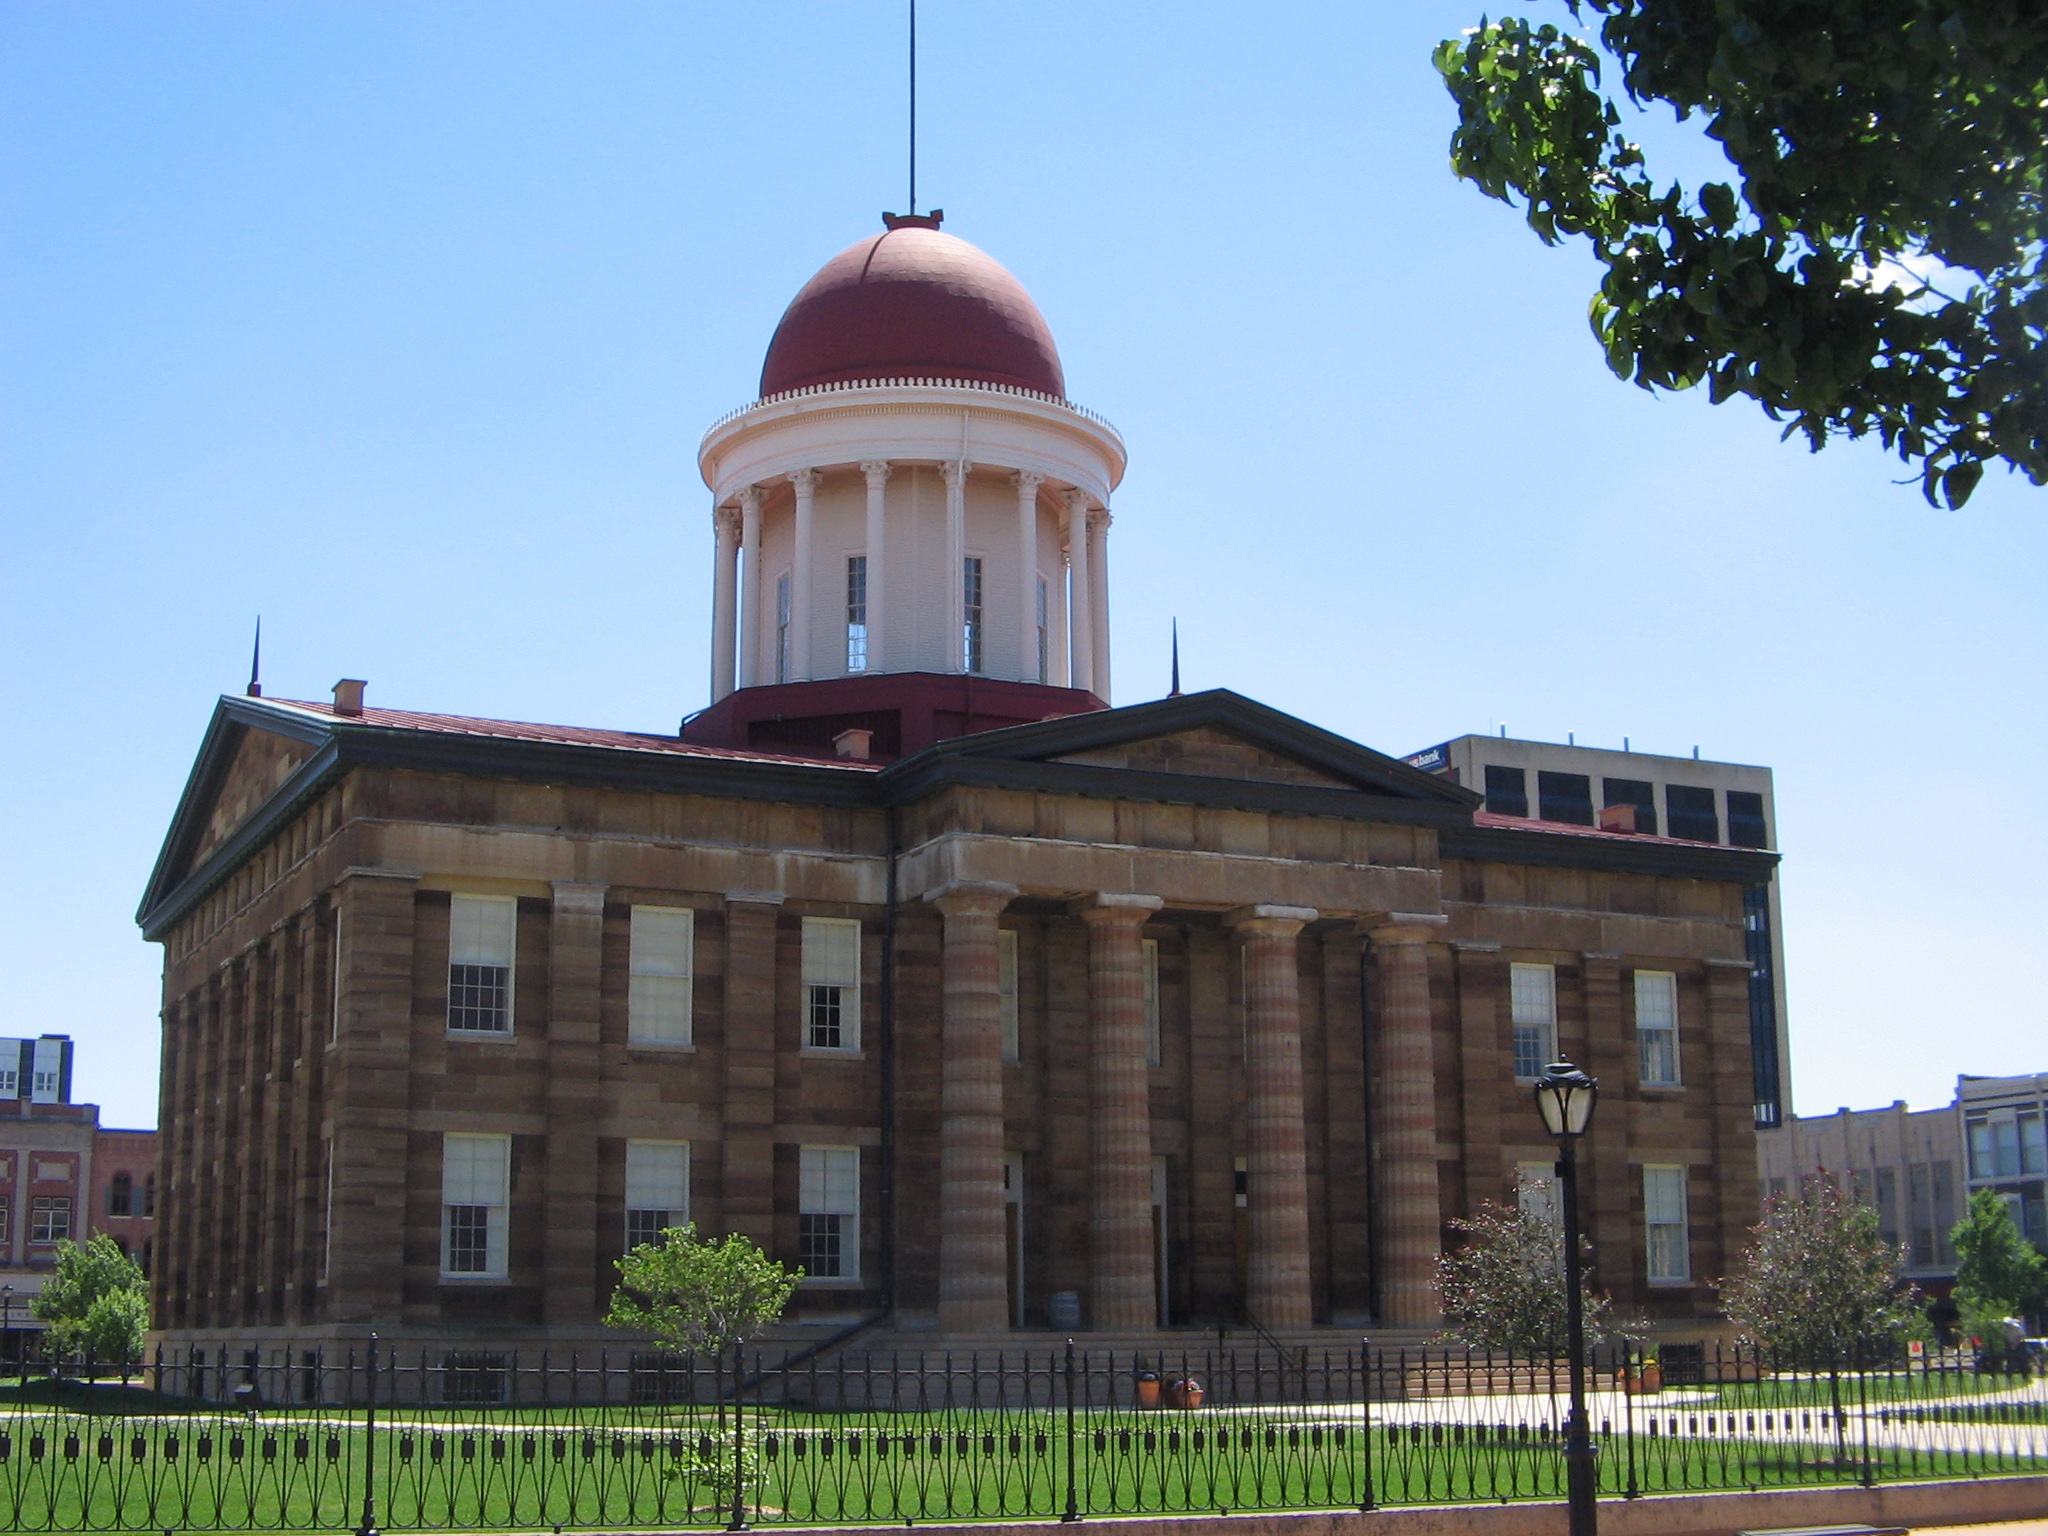 Old State Capitol (Illinois)